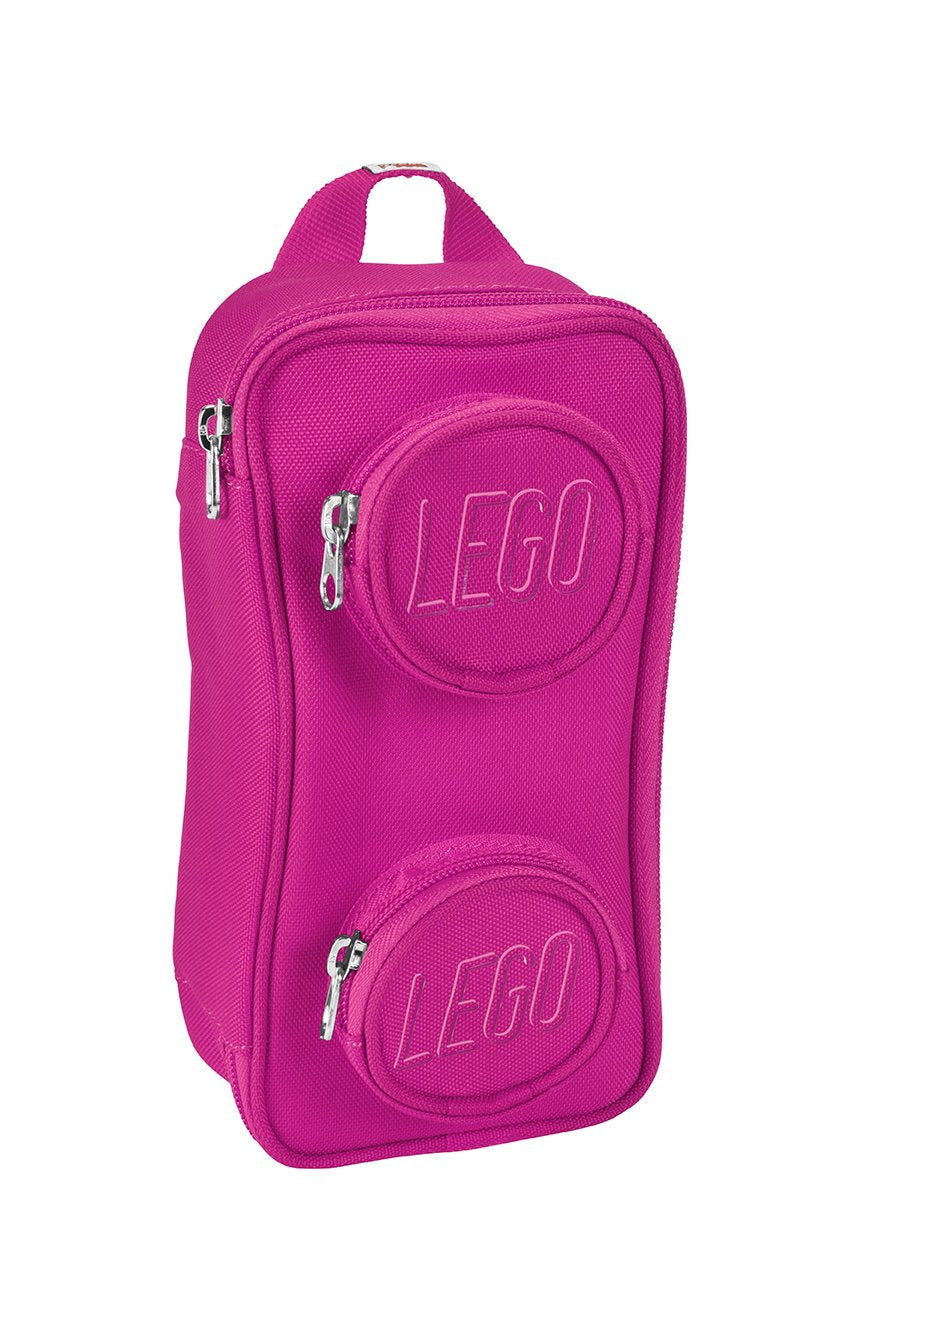 LEGO Kids' Brick Pouch, One Size, Pink